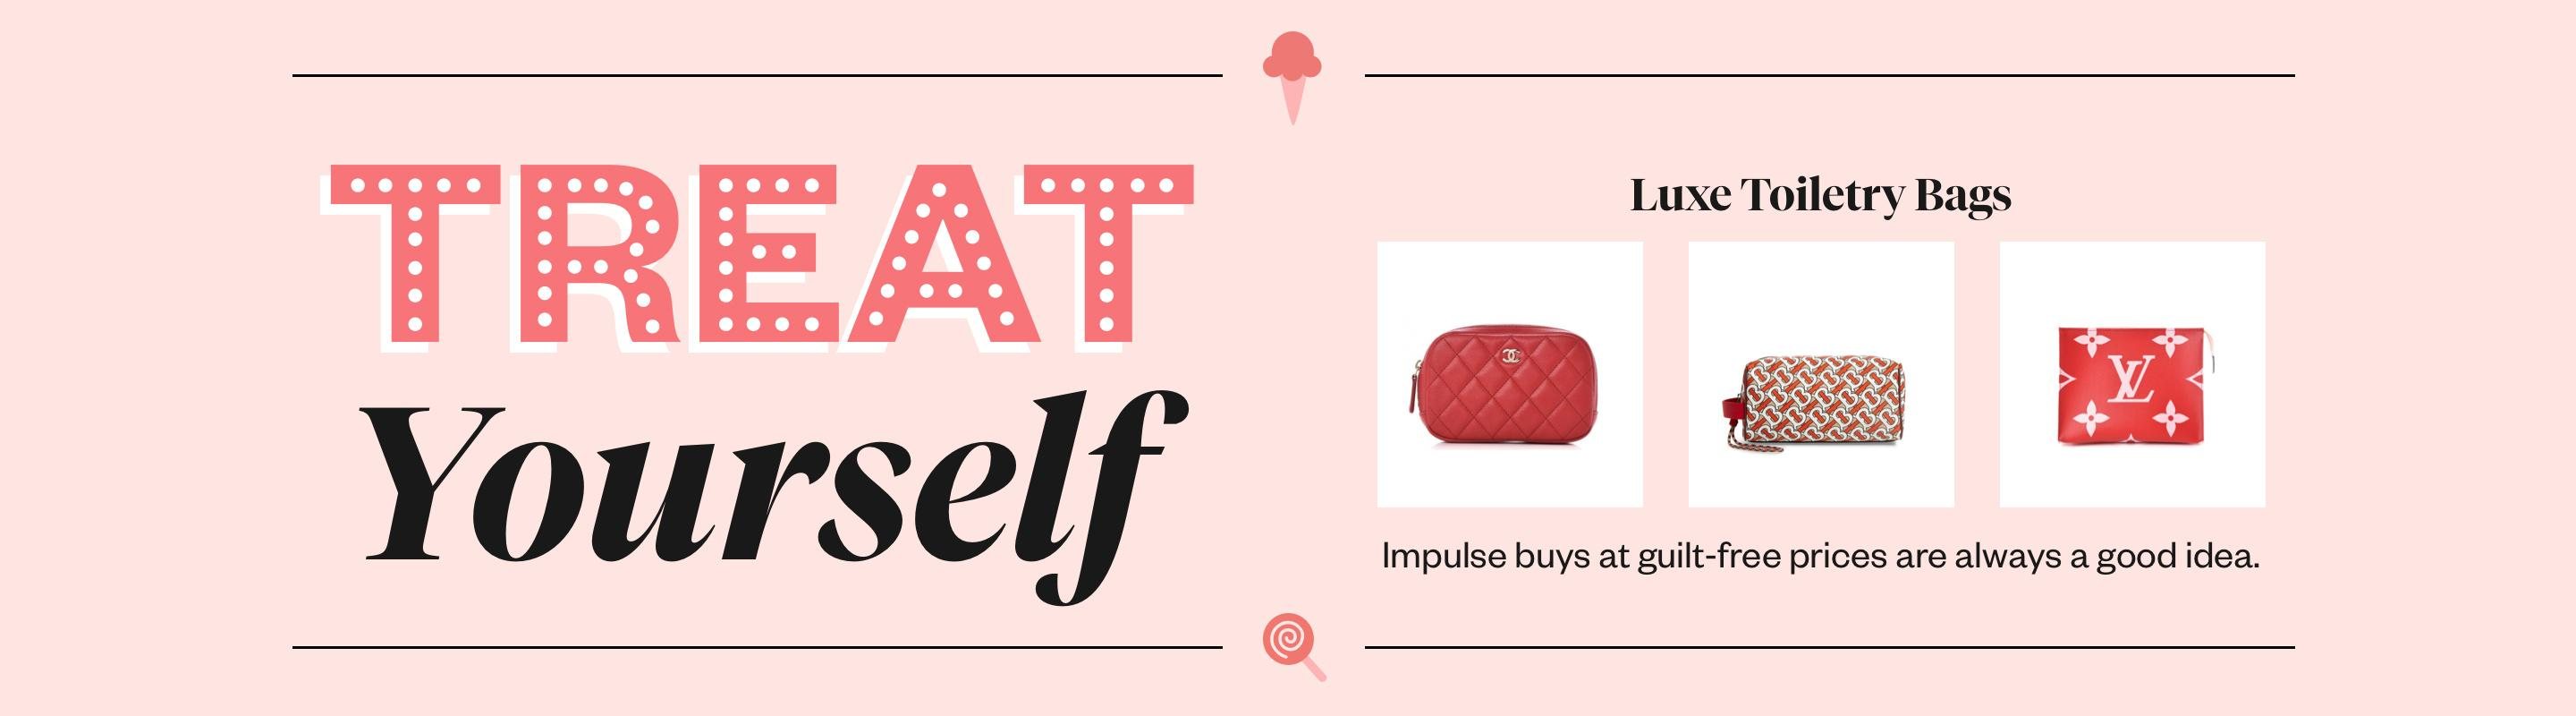 Treat Yourself: Luxe Toiletry Bags